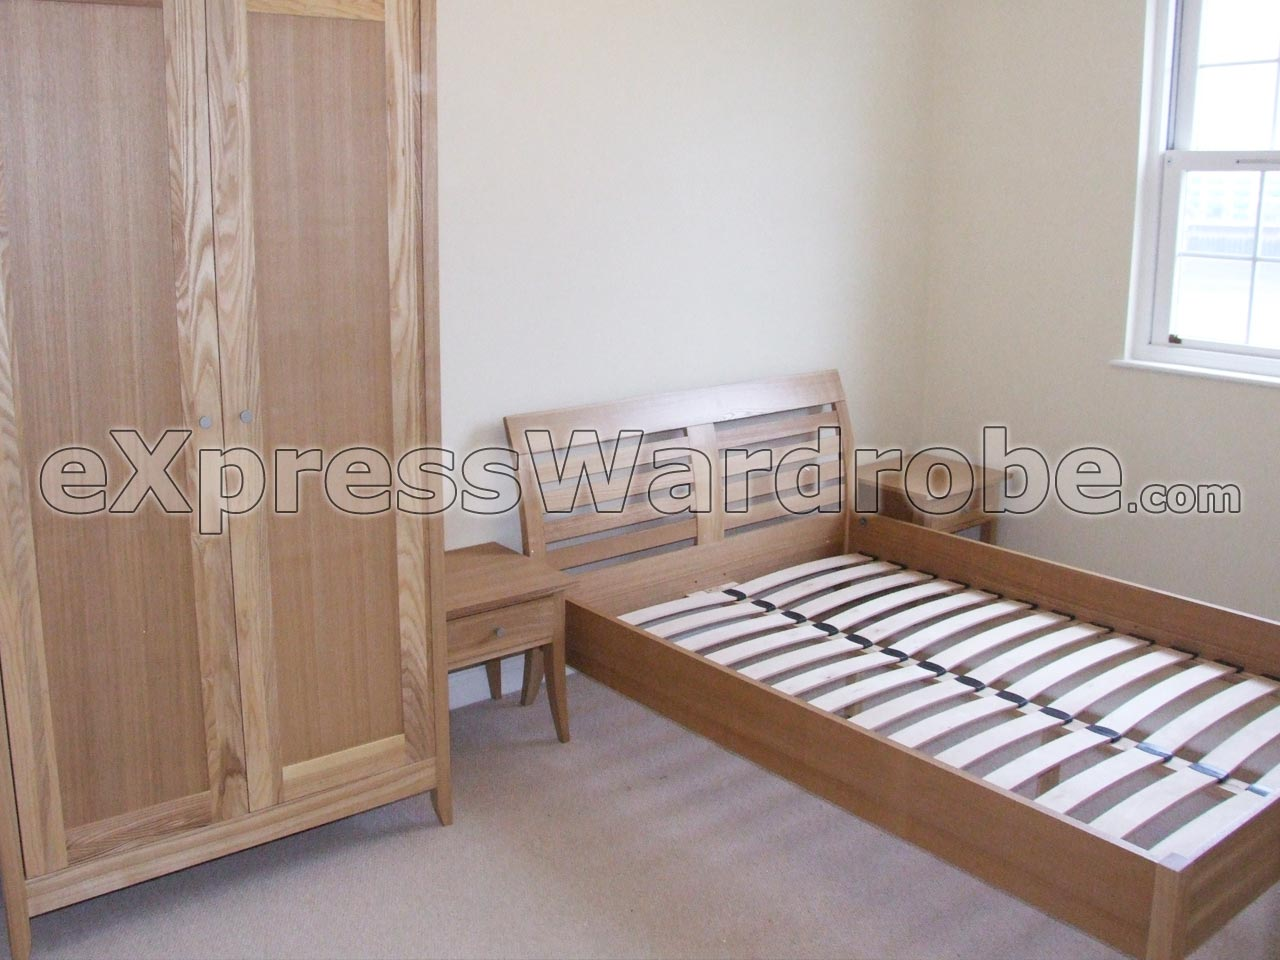 Bedroom Furniture John Lewis top bedroom furniture designs | cheap bedroom furniture | designer